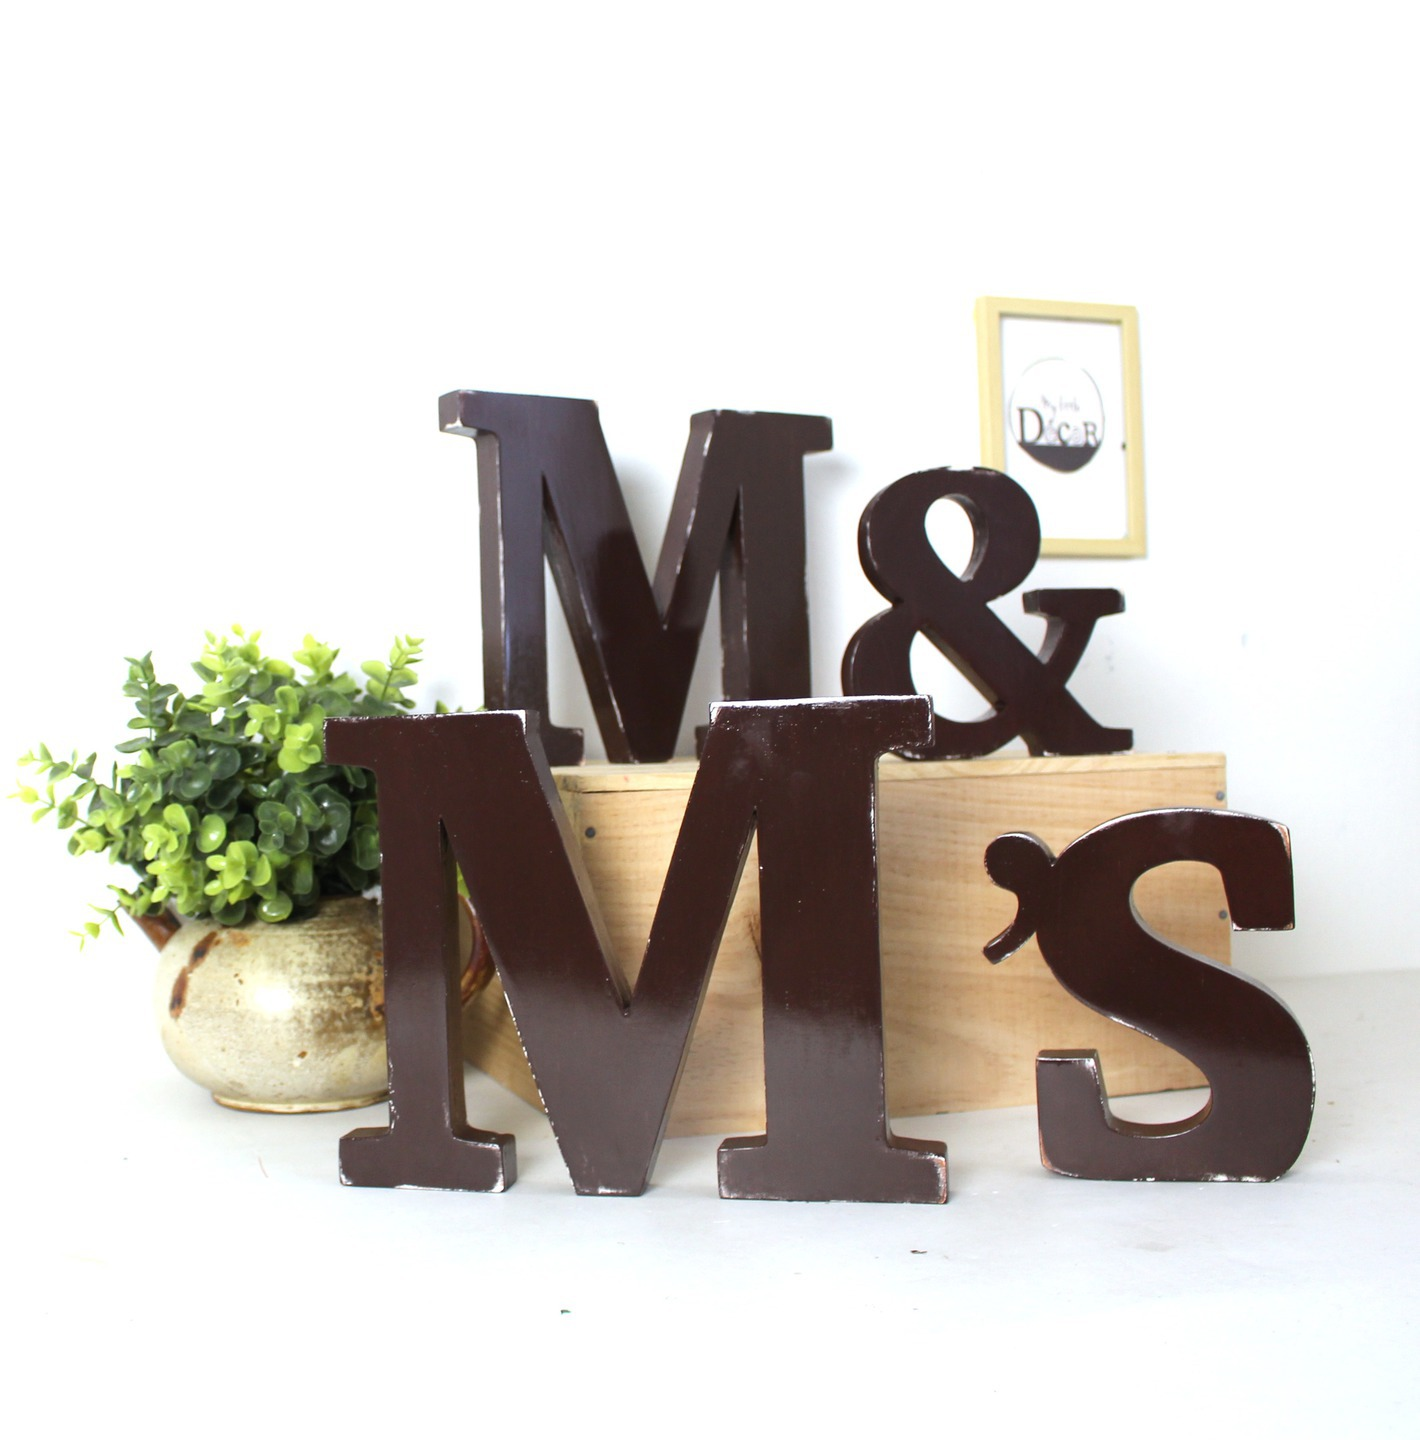 lettres en bois m m 39 s poser marron fonc mariage d coration mylittledecor initiale. Black Bedroom Furniture Sets. Home Design Ideas